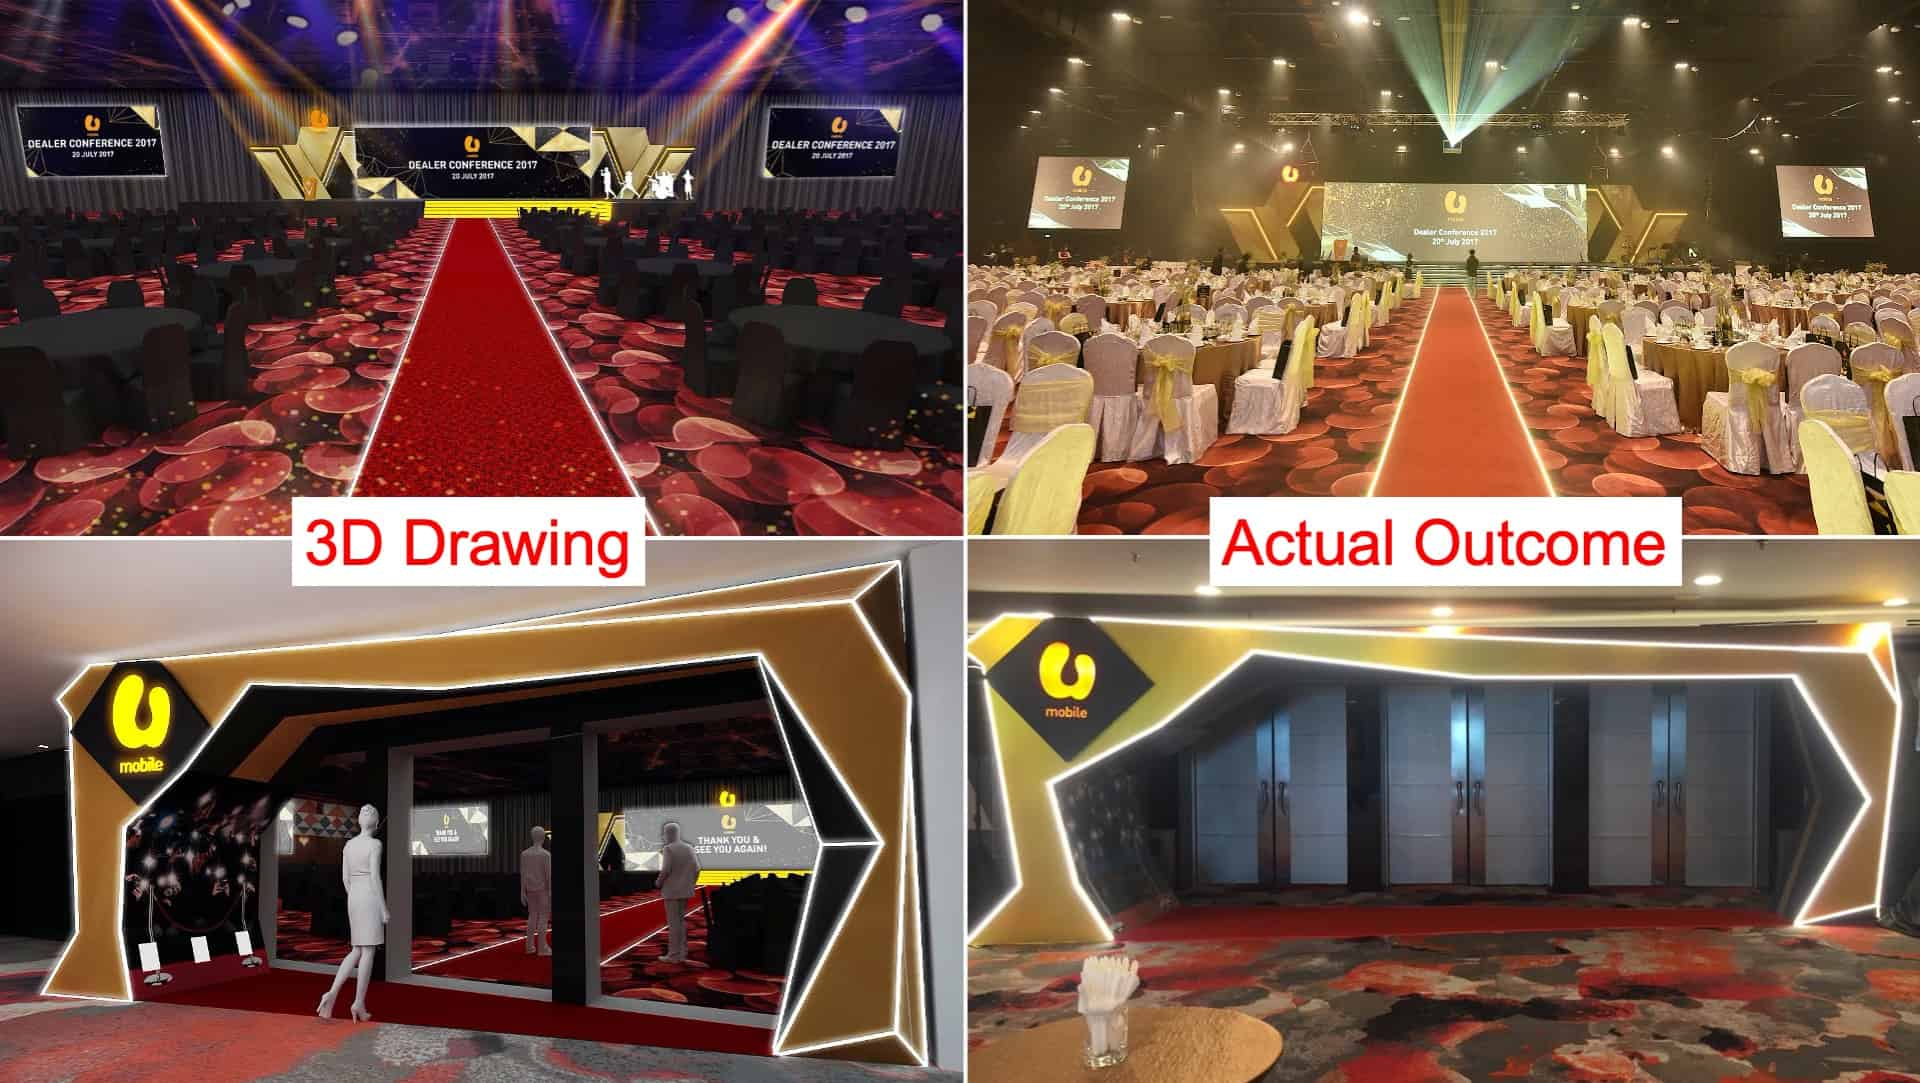 3D Drawing Services KL